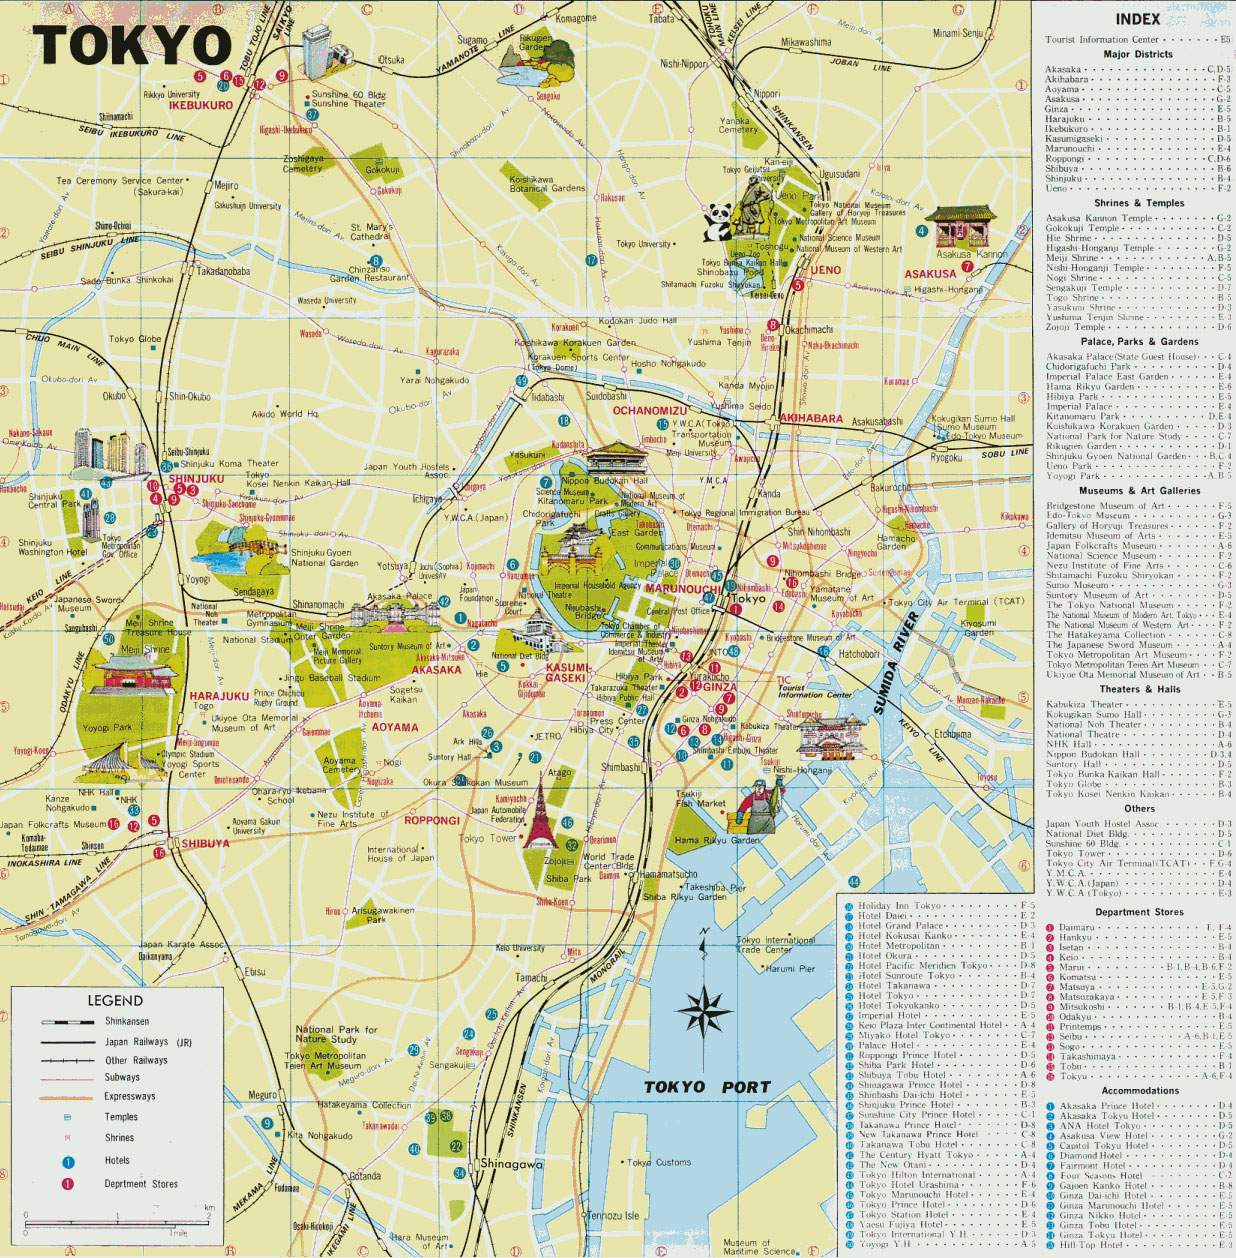 Large Tokyo Maps For Free Download And Print | High-Resolution And - Printable Map Of Tokyo